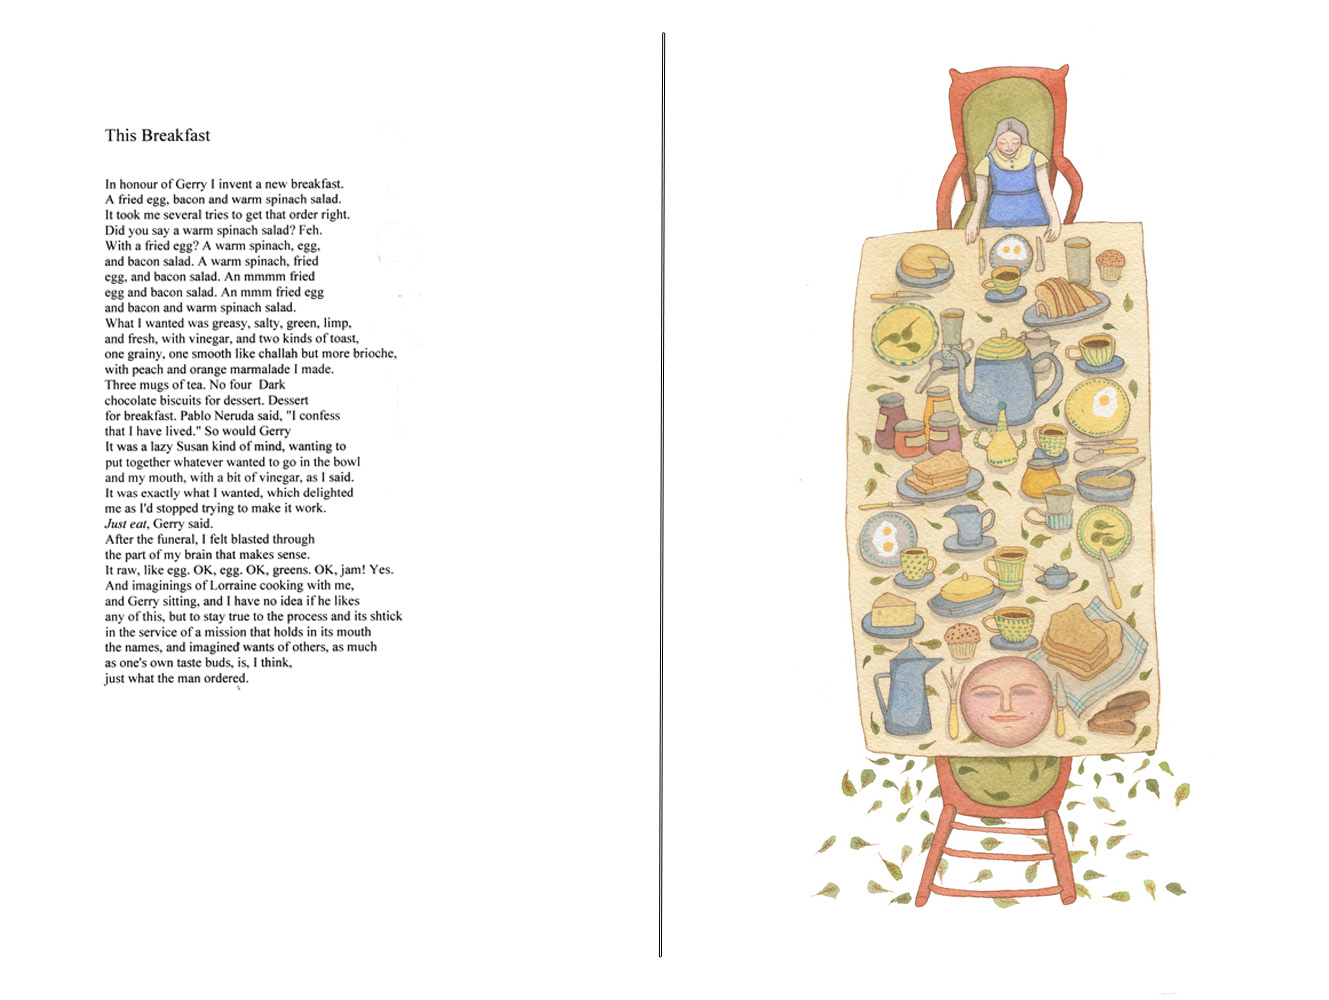 This Breakfast, Image by Yaara Eshet after poem by Ronna Bloom